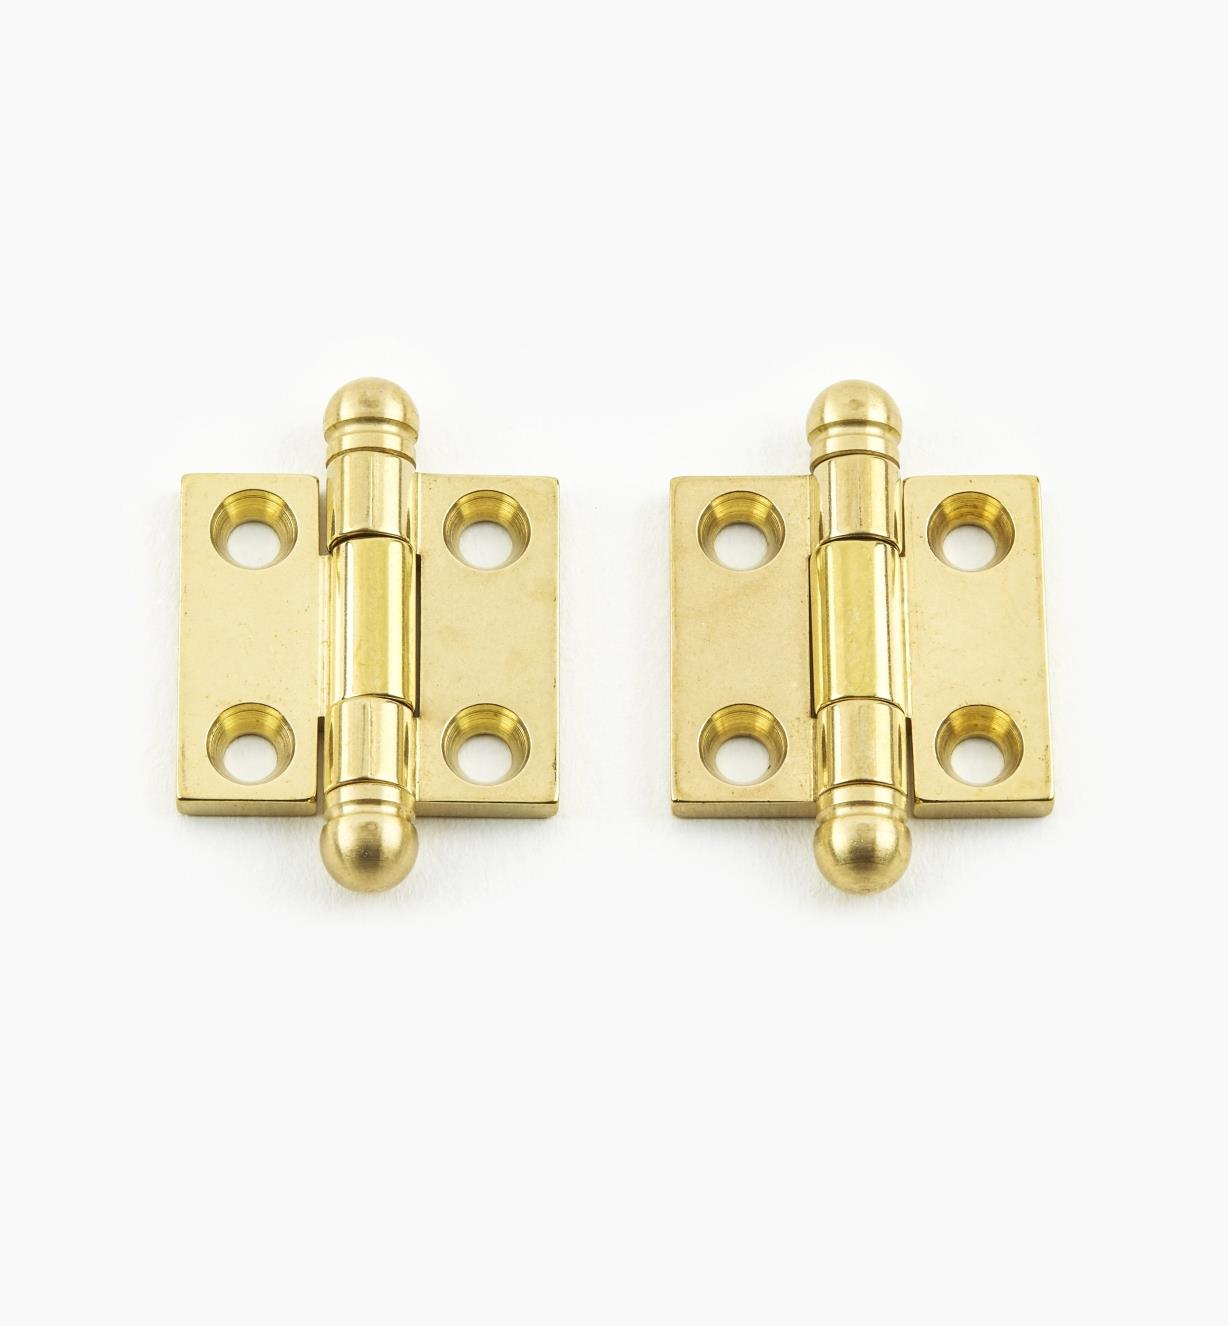 "01B0201 - 3/4"" x  13/16"" Ball-Tip Hinges, pr."